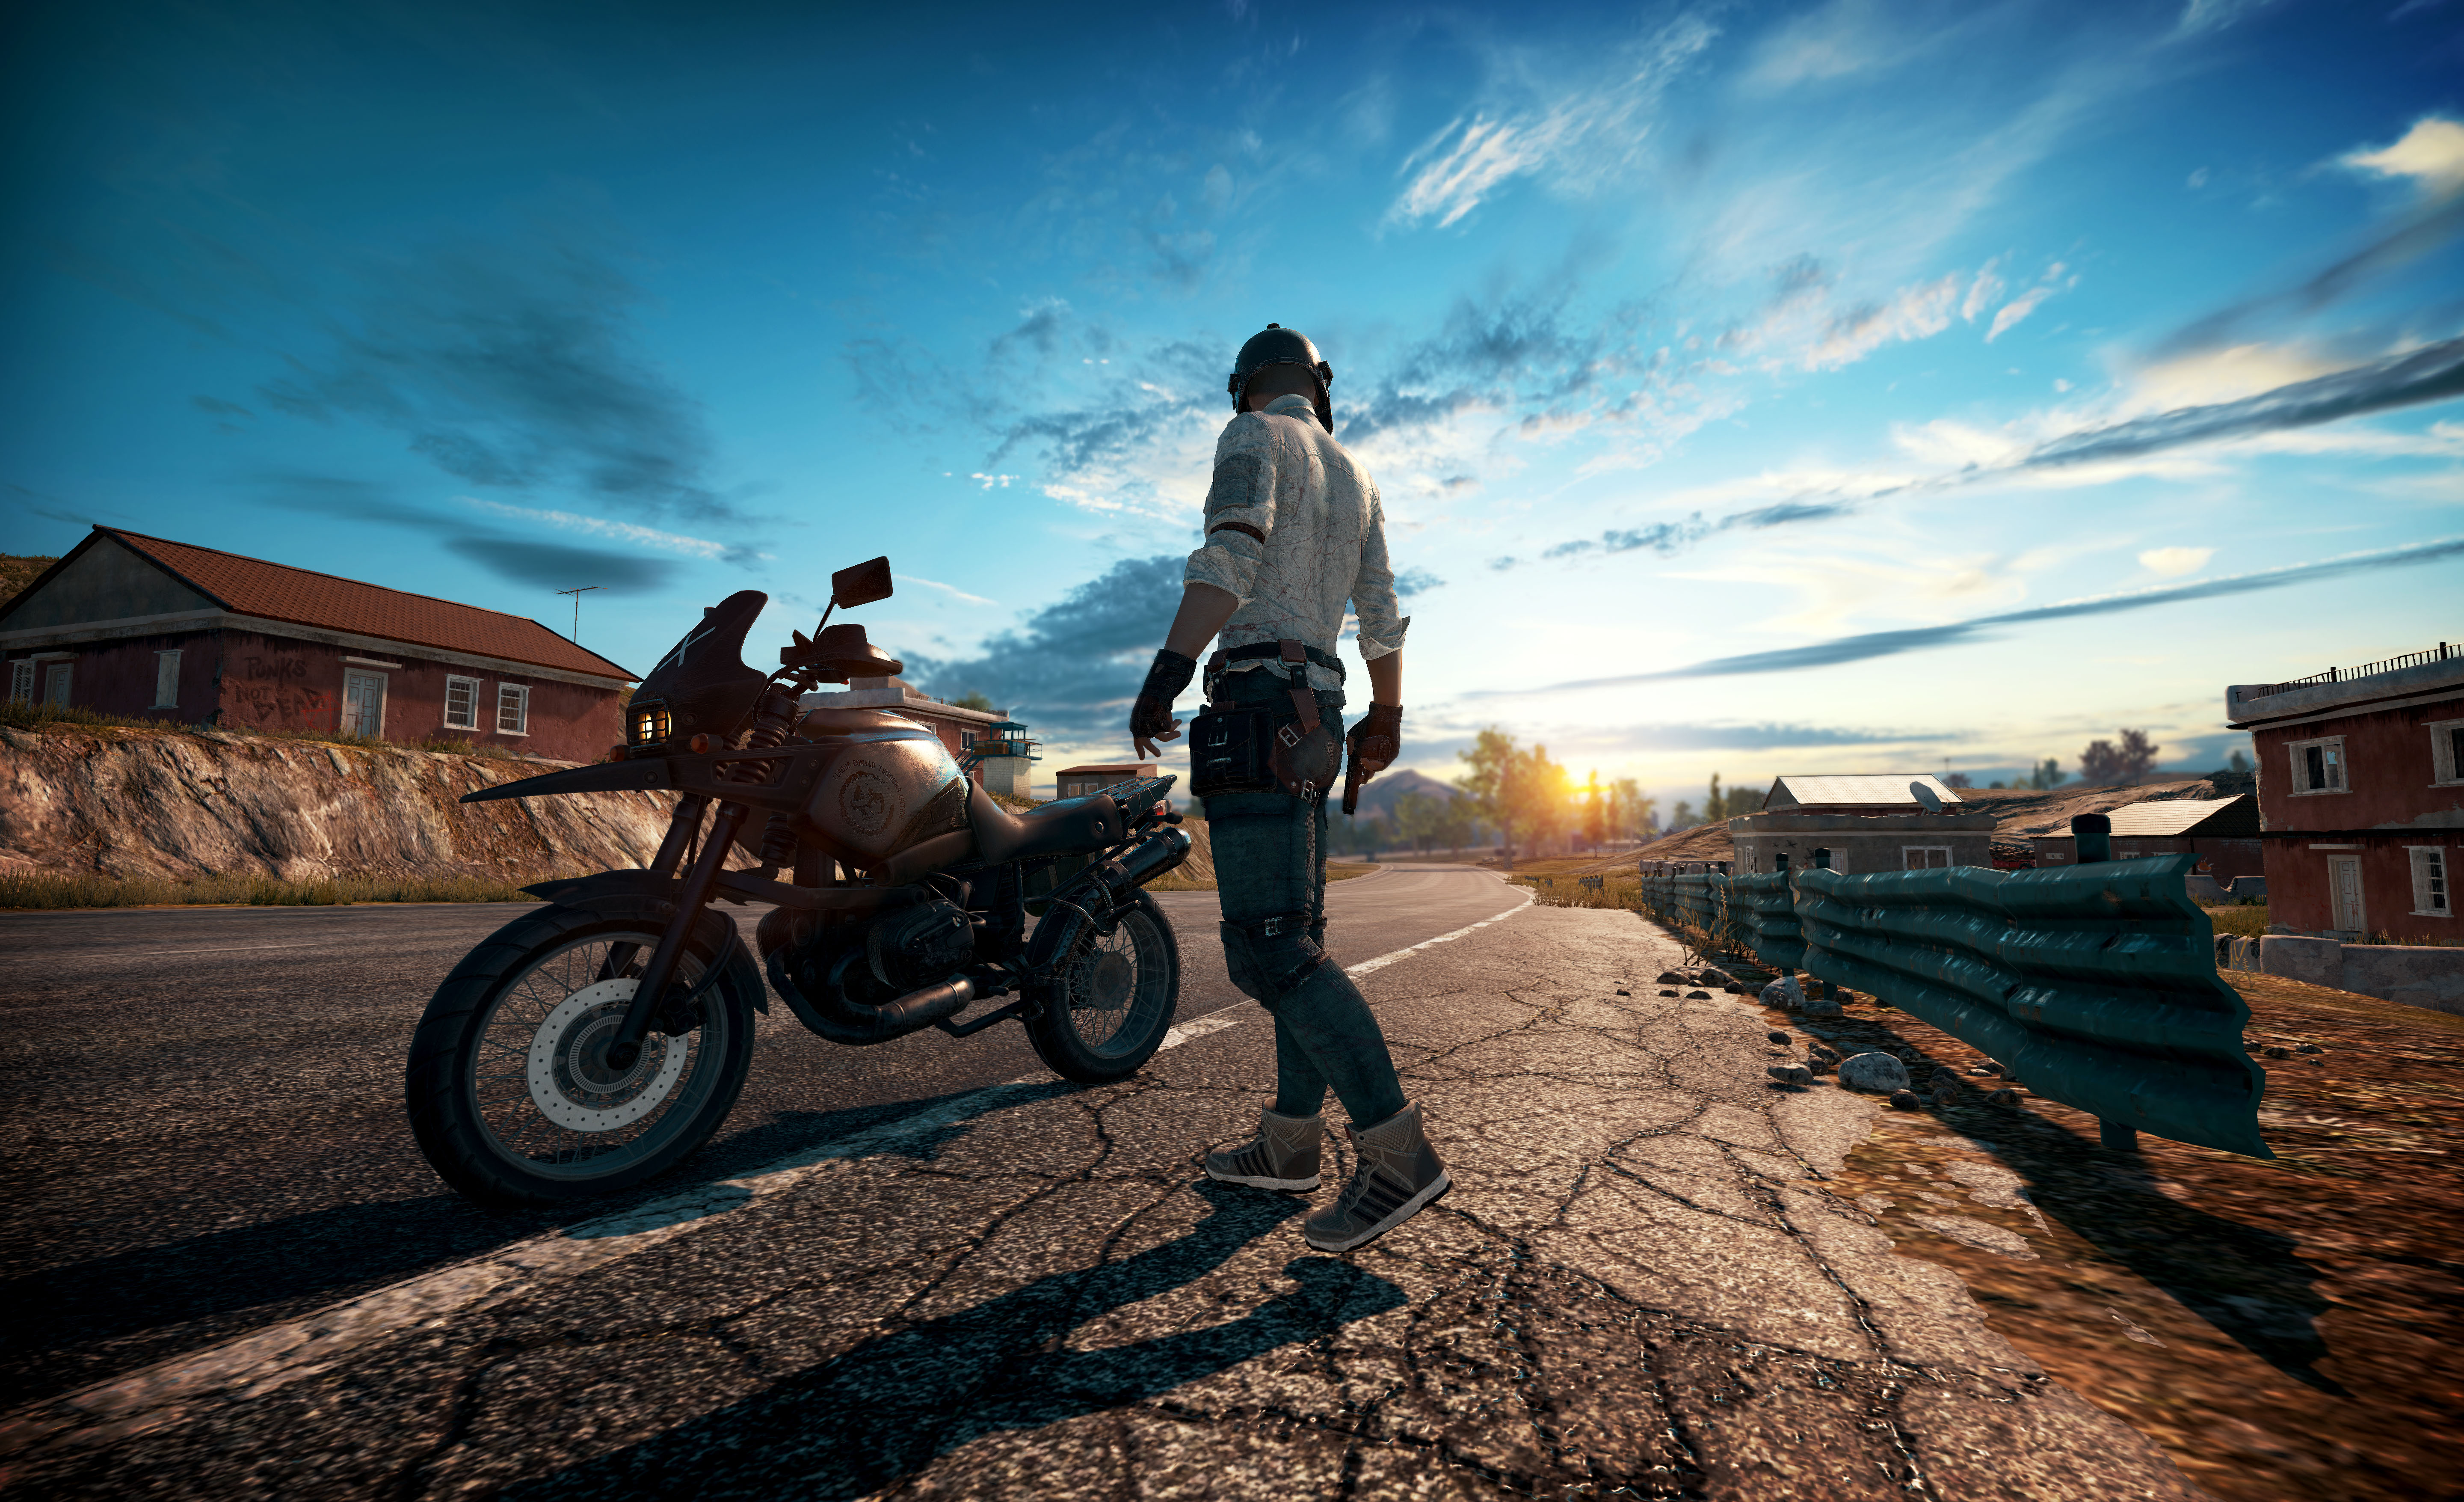 Pubg Wallpaper 4k Mobile: PlayerUnknowns Battlegrounds 5k Screenshot, HD Games, 4k